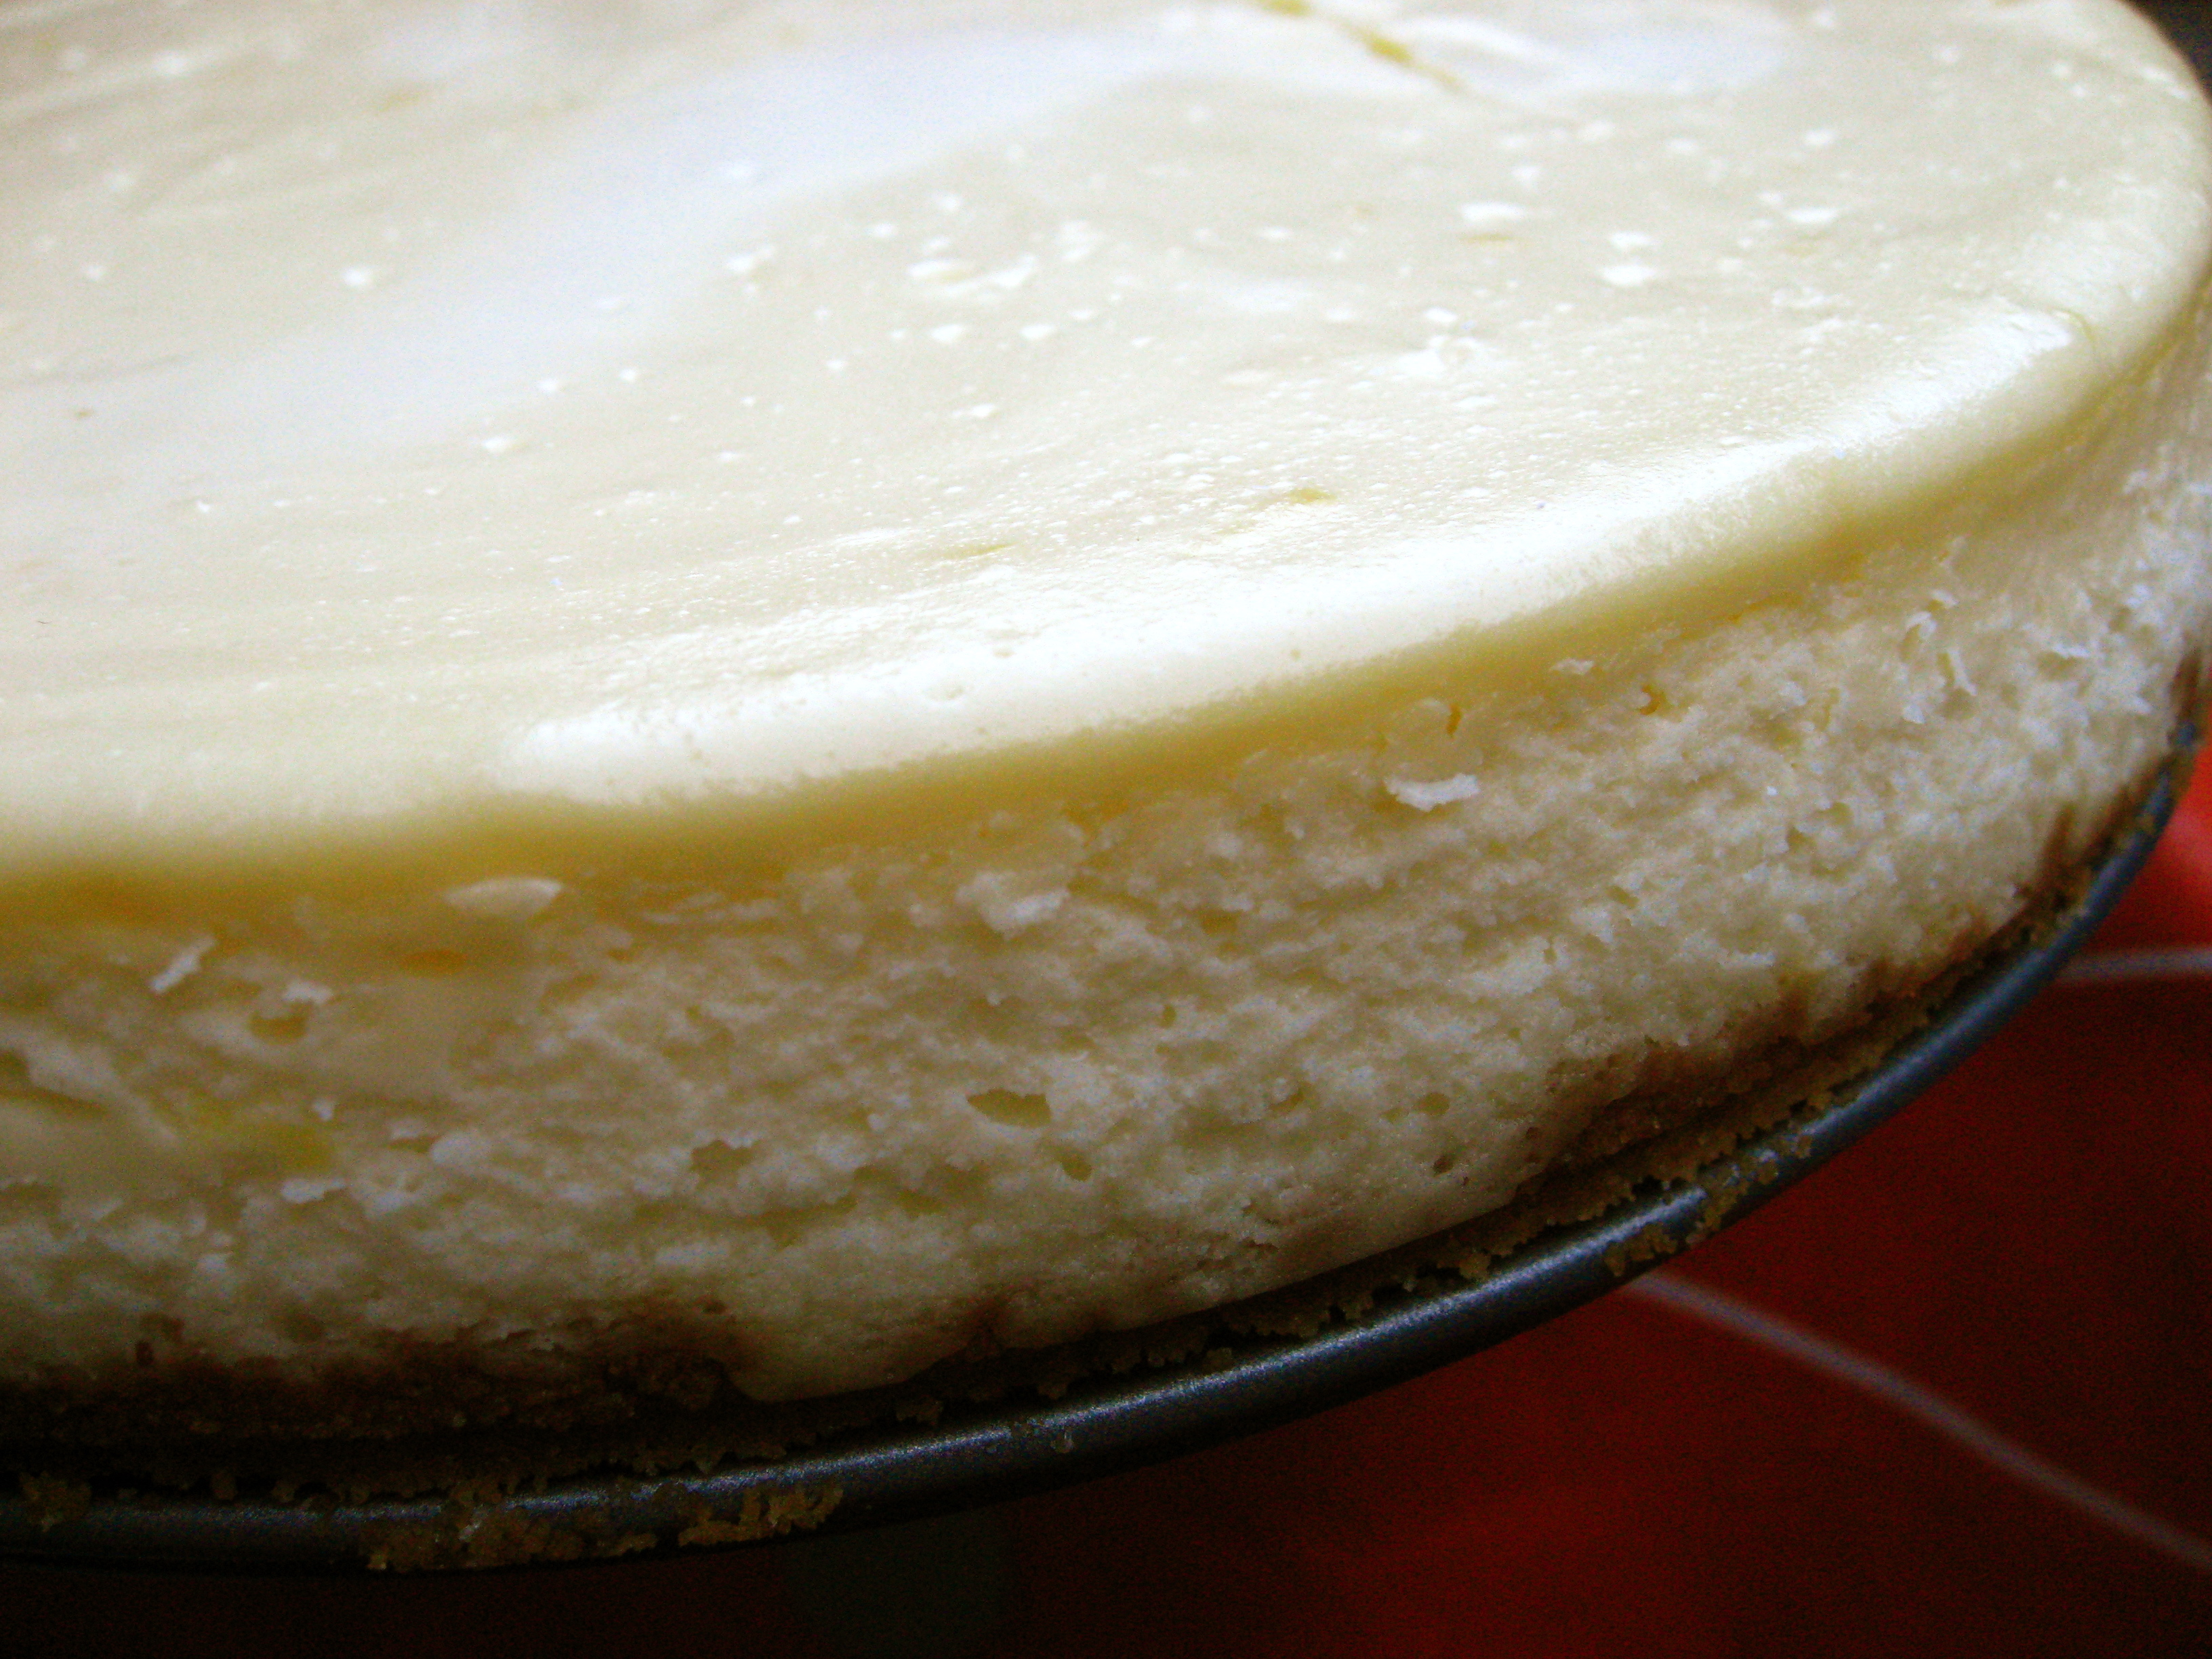 52 Weeks of Baking: Lemon Goat Cheese Cheesecake ...